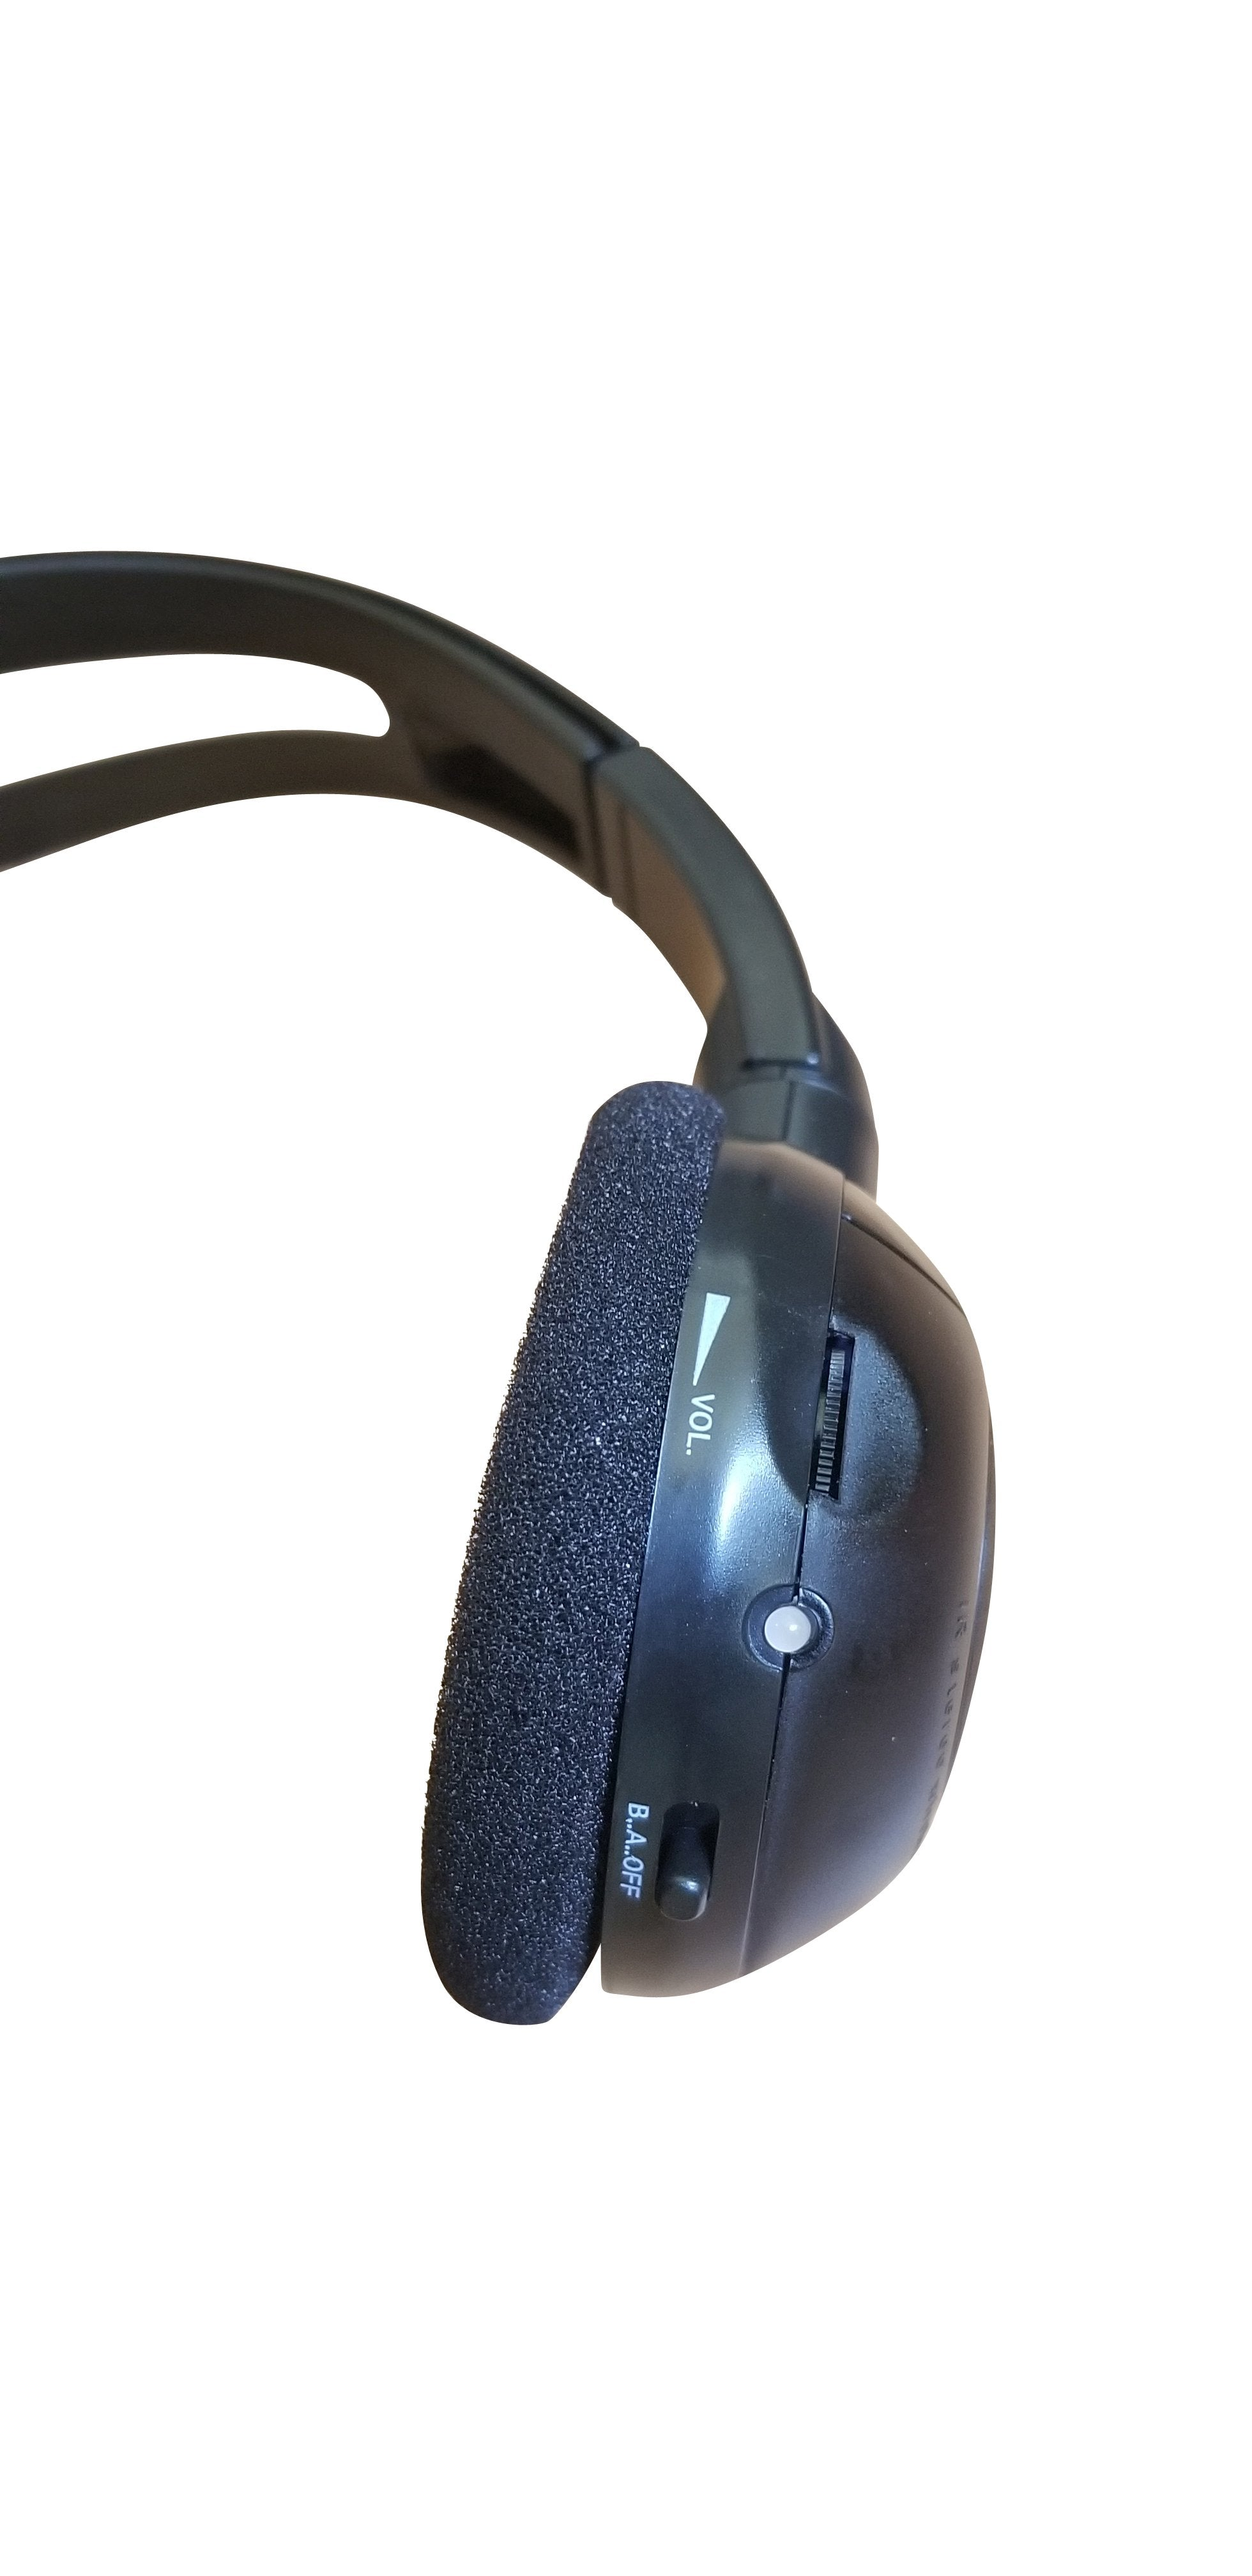 2010 Toyota FJ-Cruiser Wireless DVD Headphone